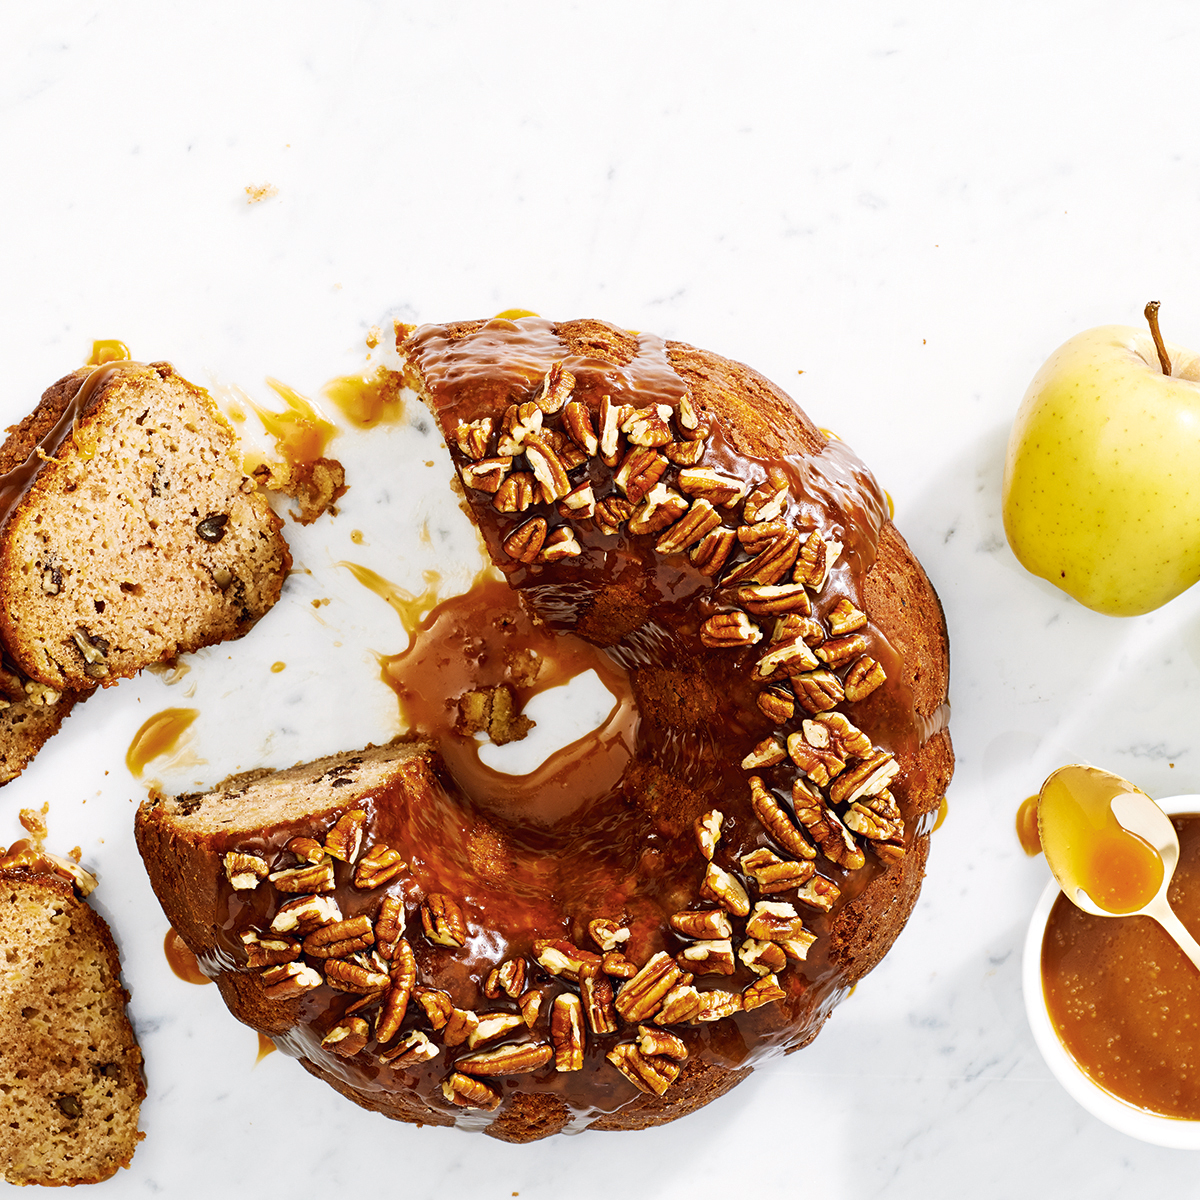 UrbanKitchen: Apple Pecan Bundt Cake With Caramel Sauce